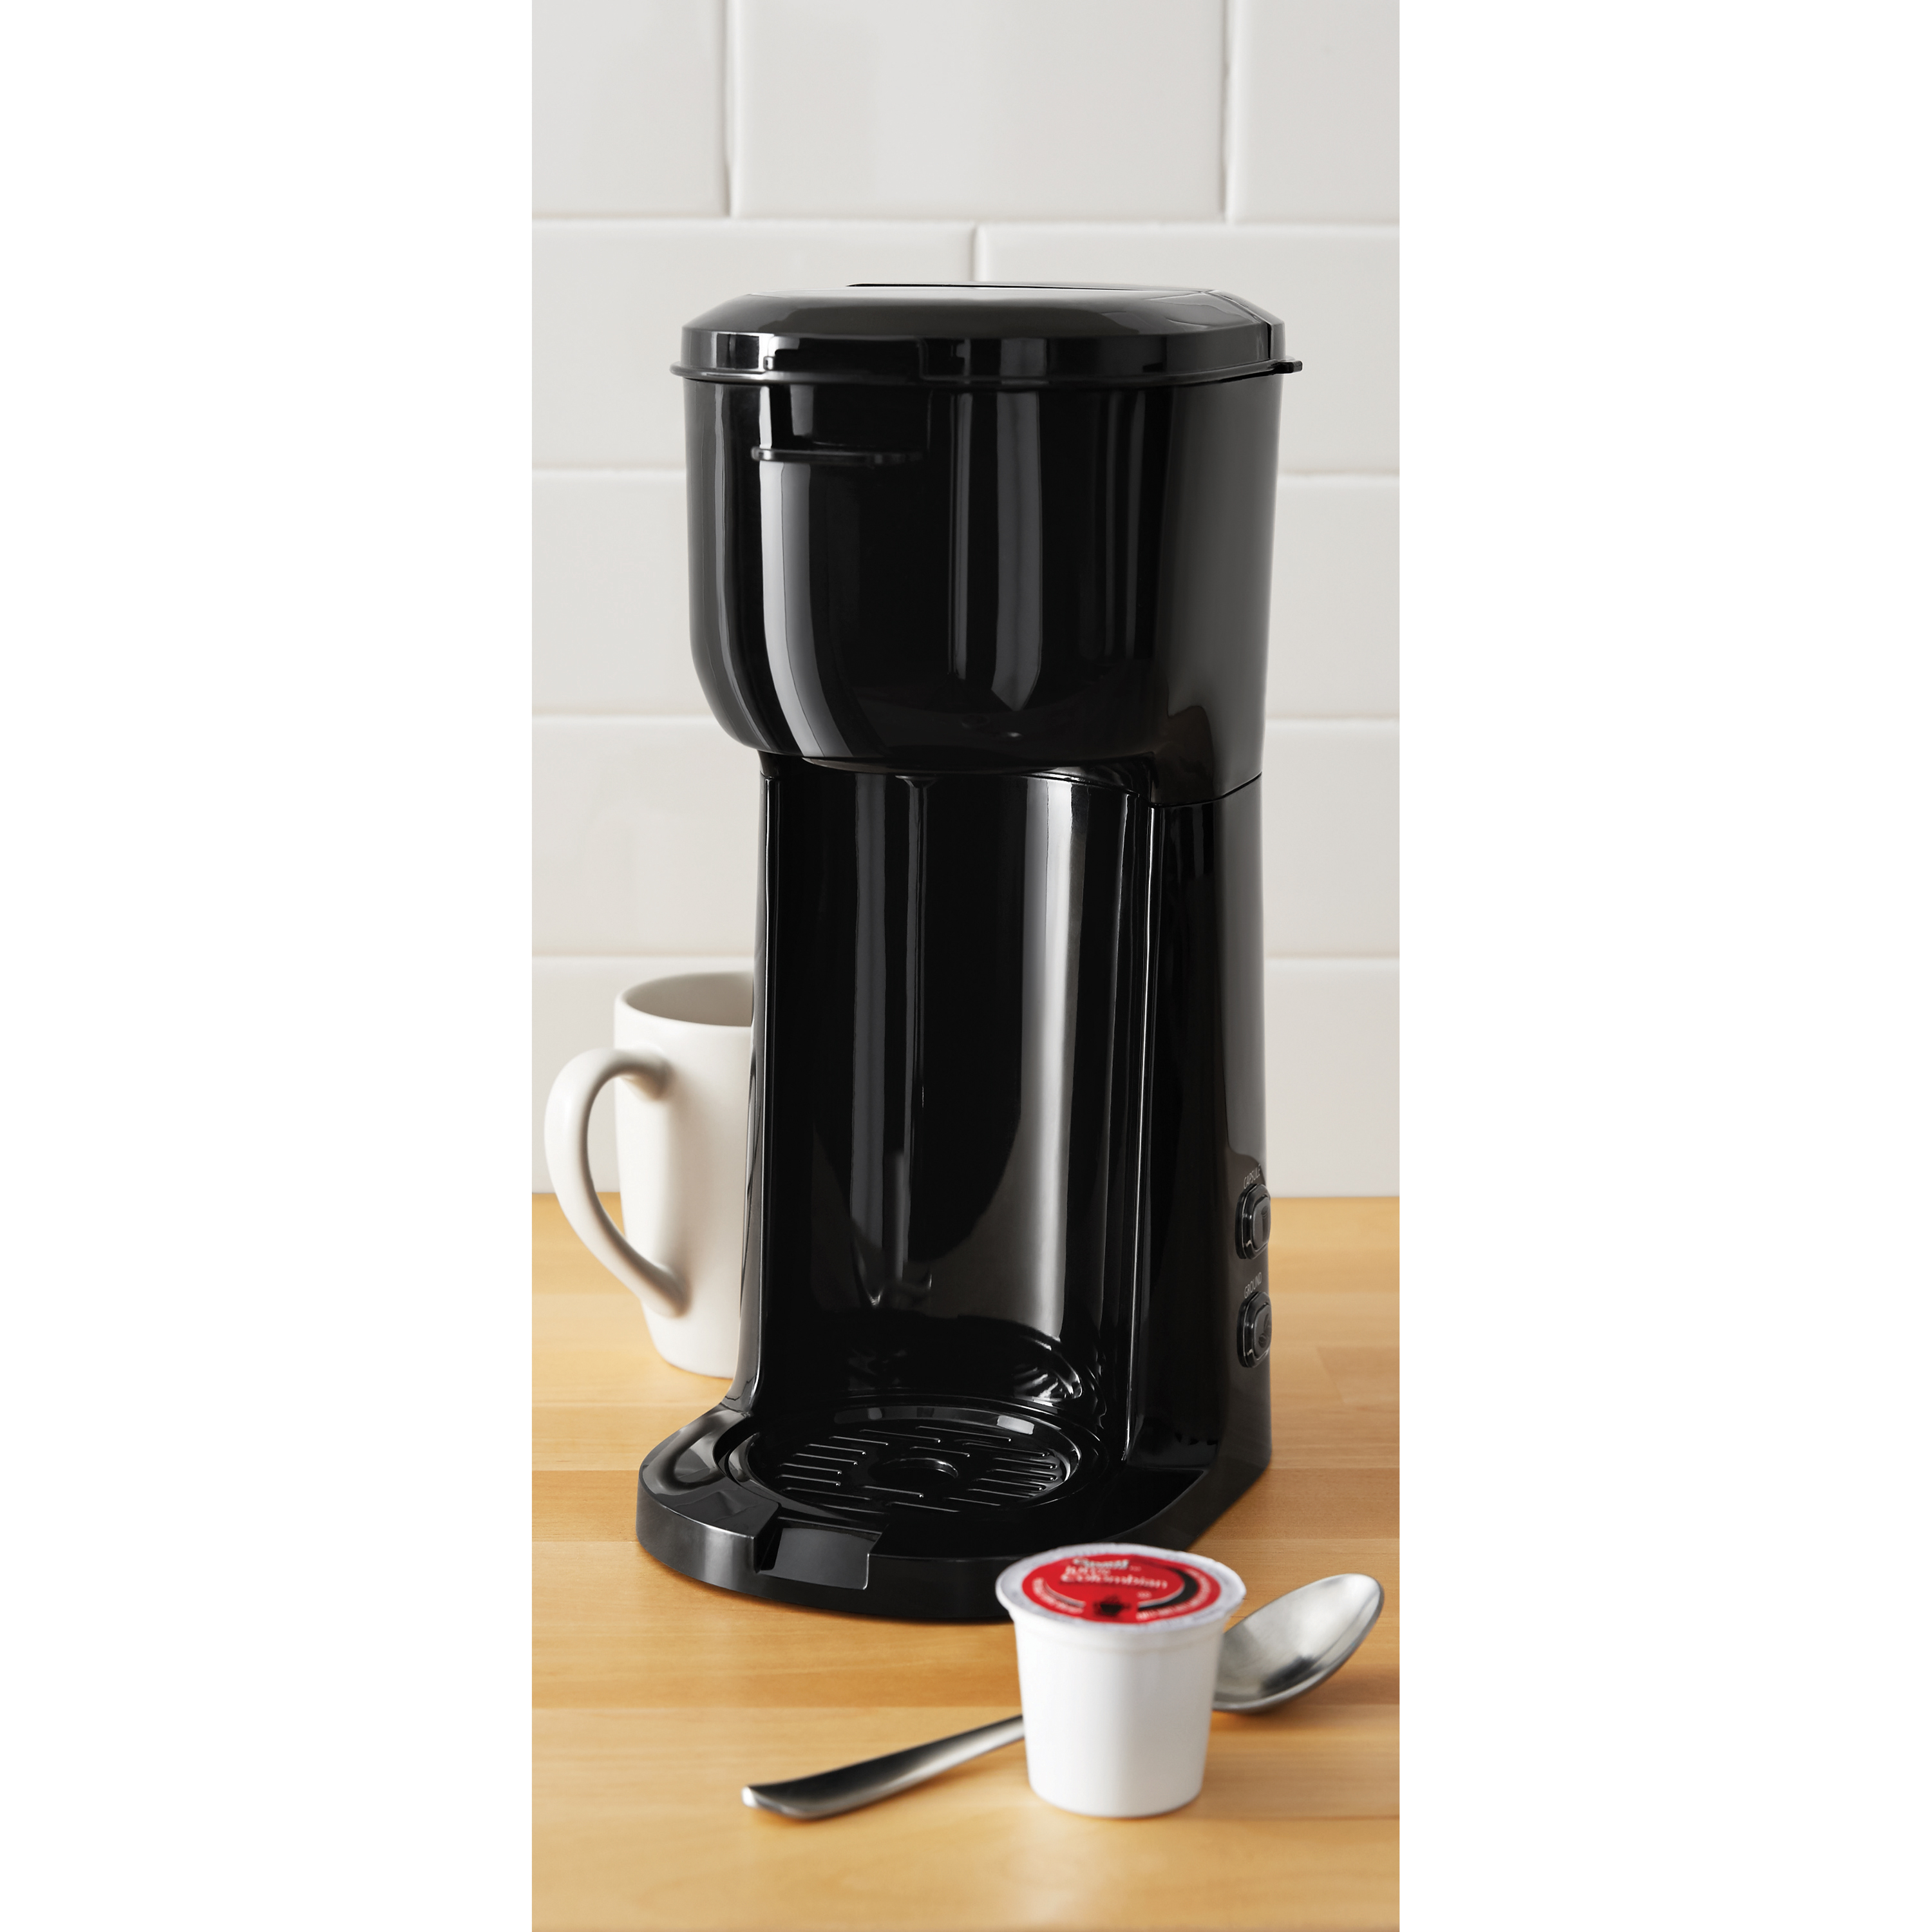 mainstays single serve coffee maker - Commercial Coffee Maker